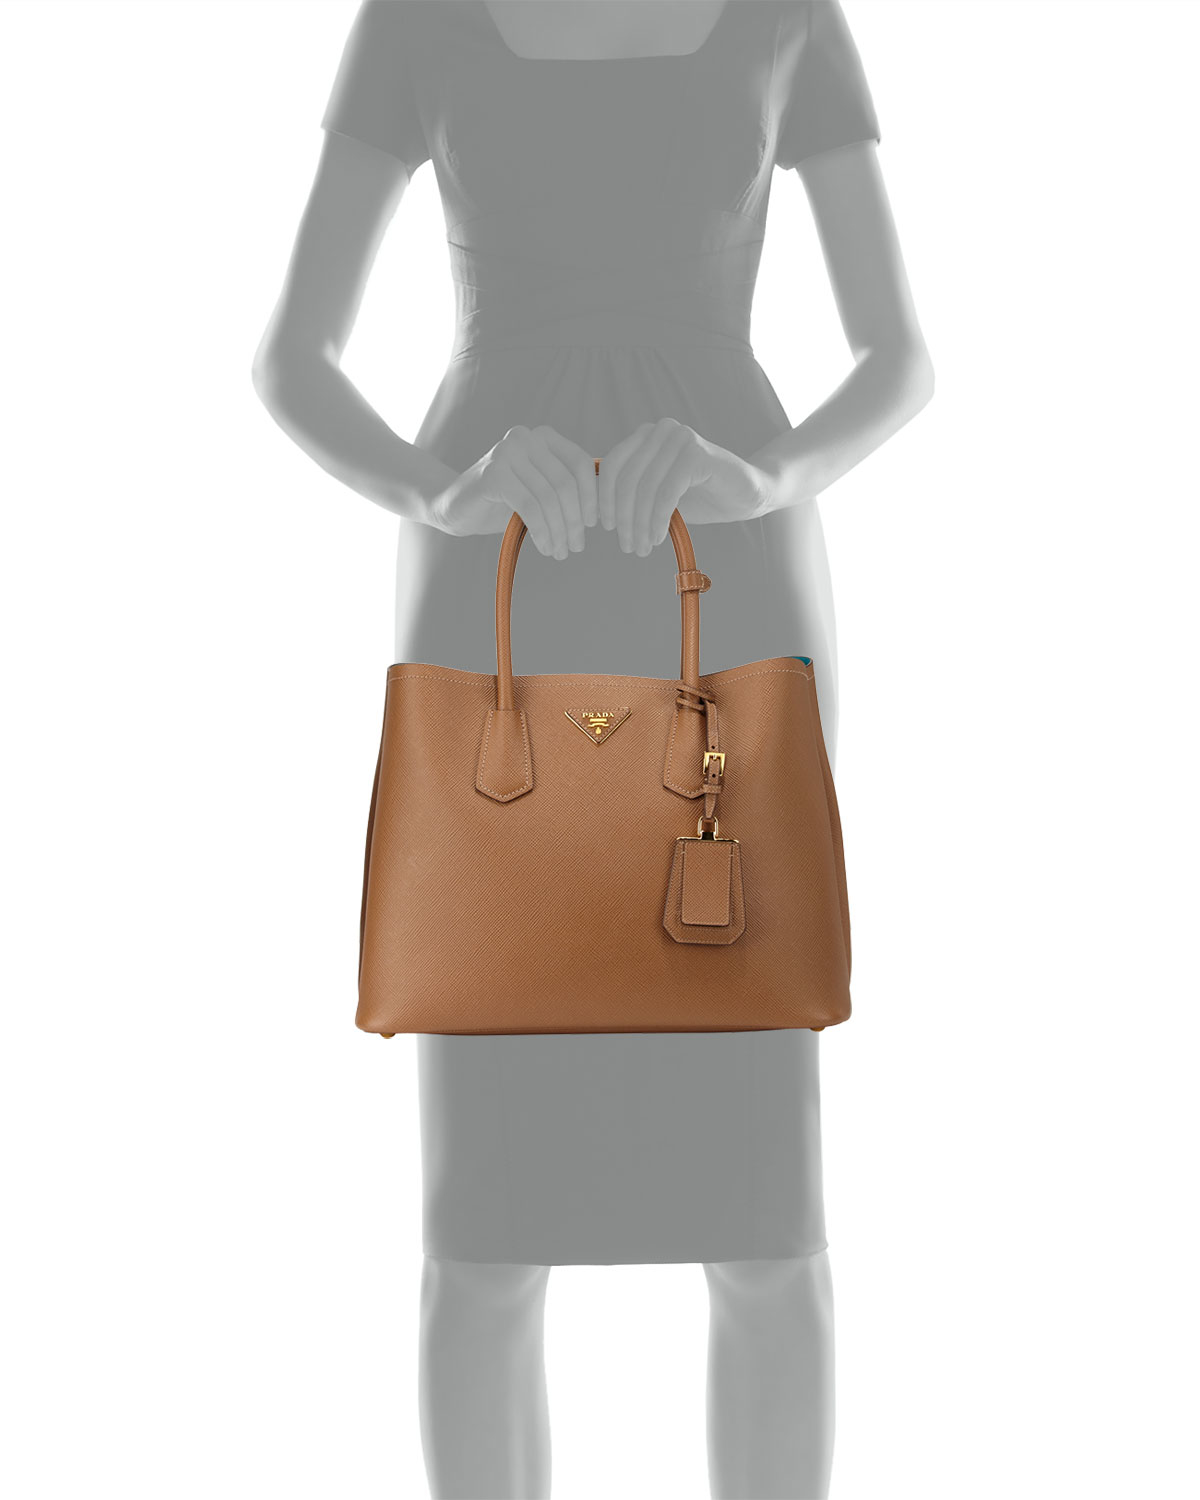 b9de4049112f canada prada tote in ambra vitello daino bn1713 sold 726a0 04336  usa lyst  prada saffiano cuir medium double bag in brown 3d354 c06c7